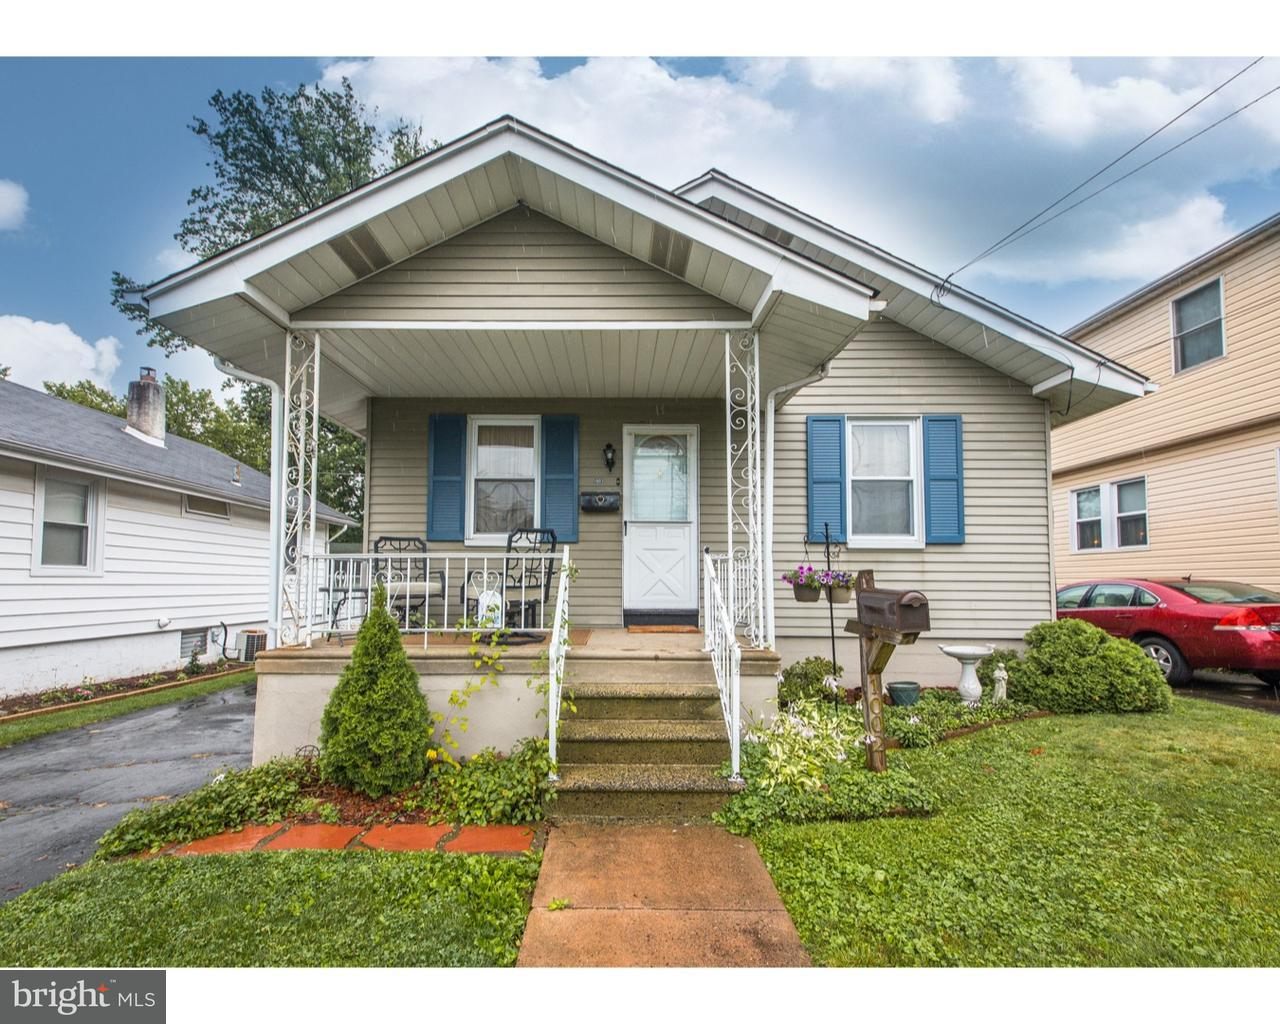 1002 WINCHESTER AVE, JENKINTOWN - Listed at $205,000, JENKINTOWN